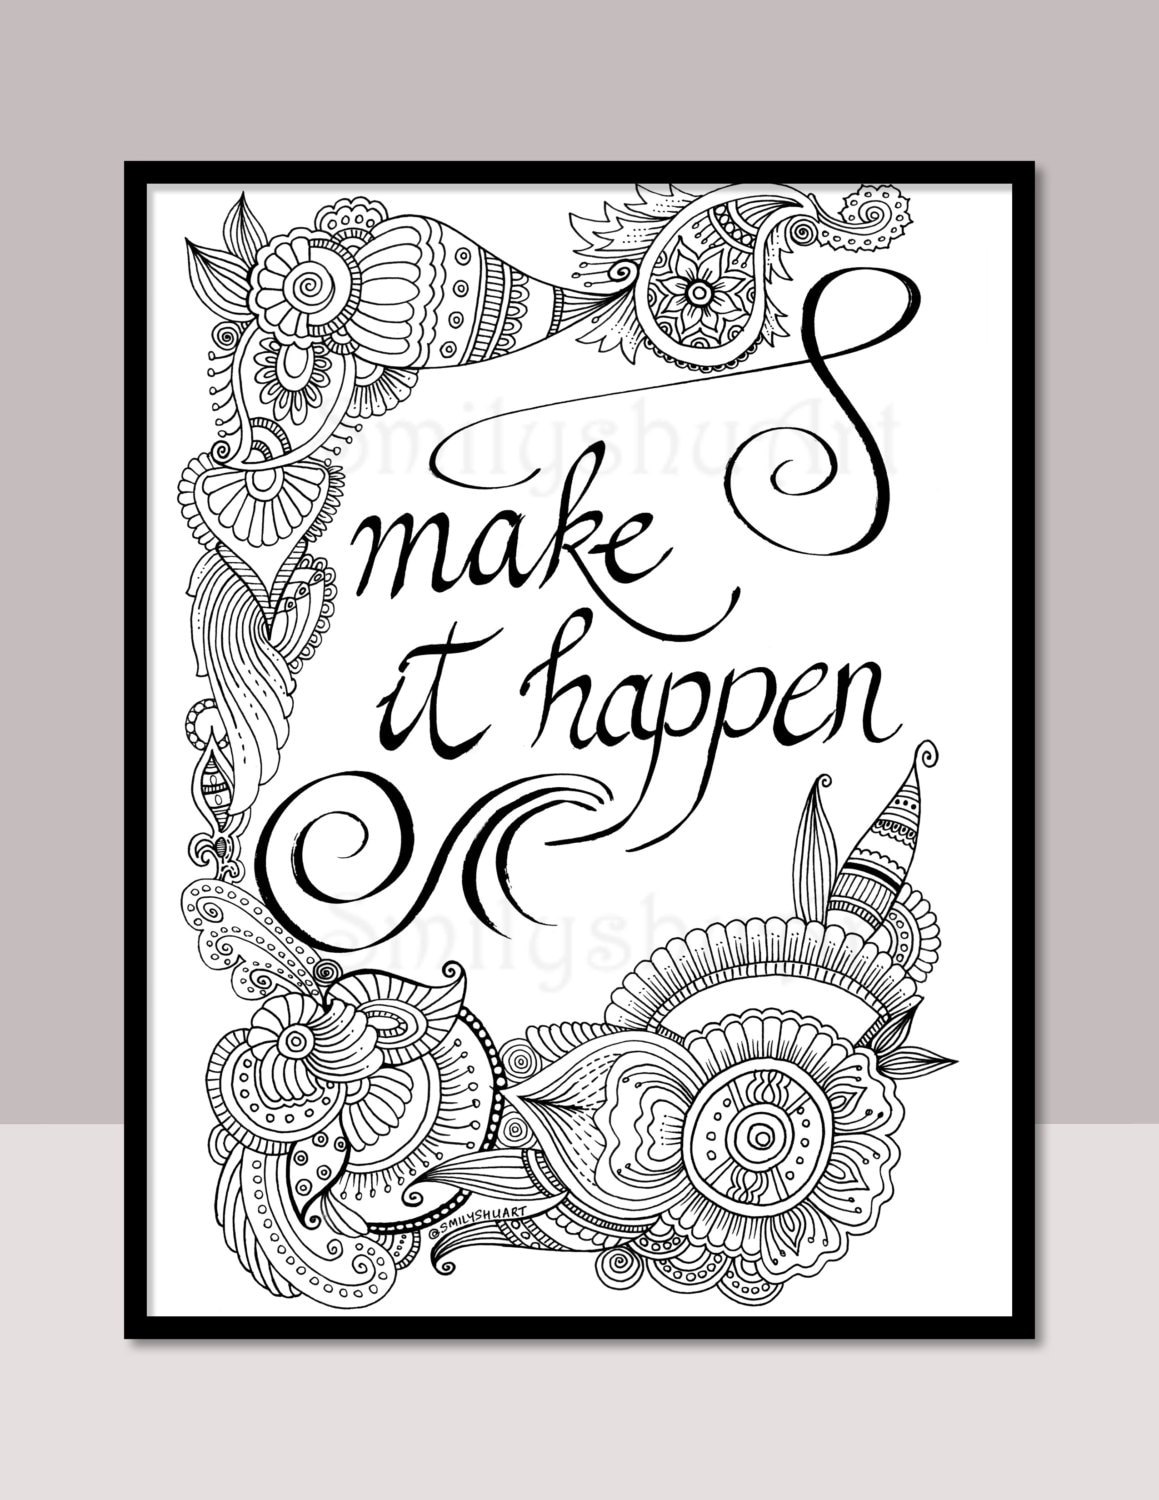 Adorable image intended for printable adult coloring pages quotes